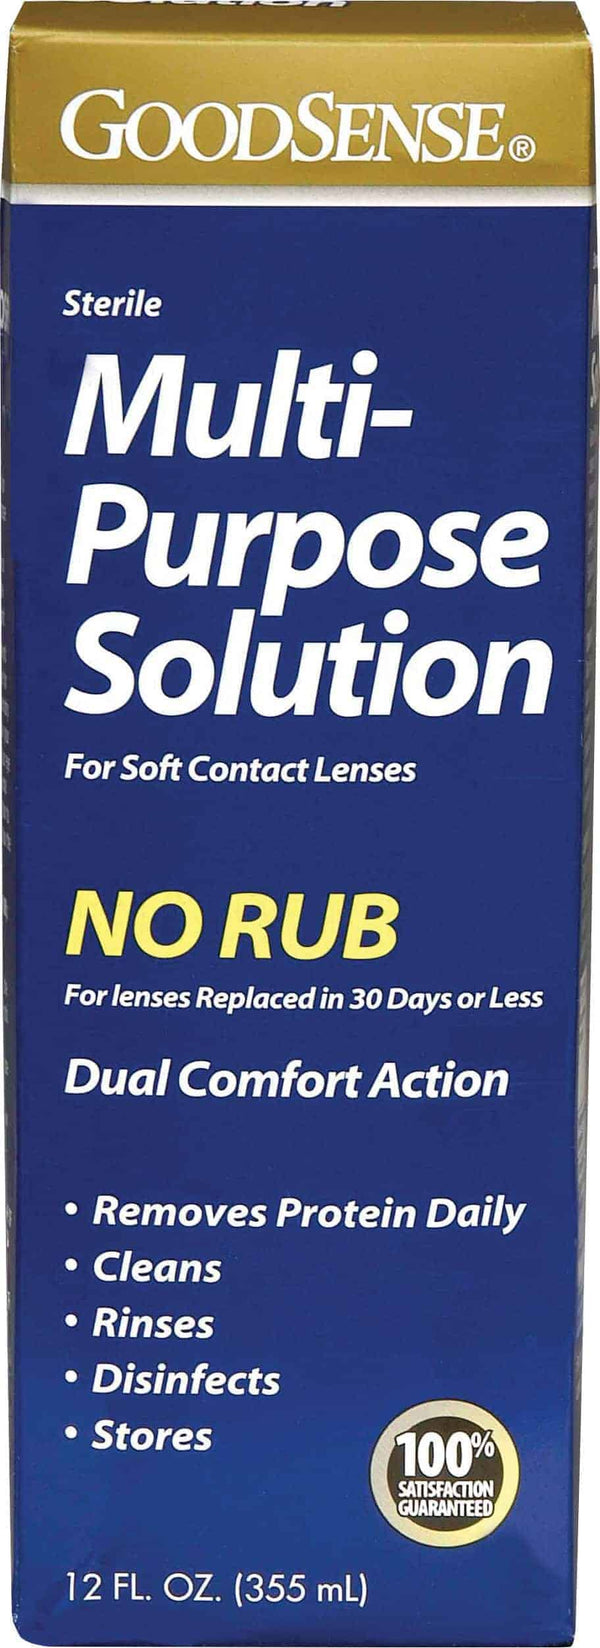 Multi-Purpose Saline Solution for Soft Contact Lenses, 12 oz.